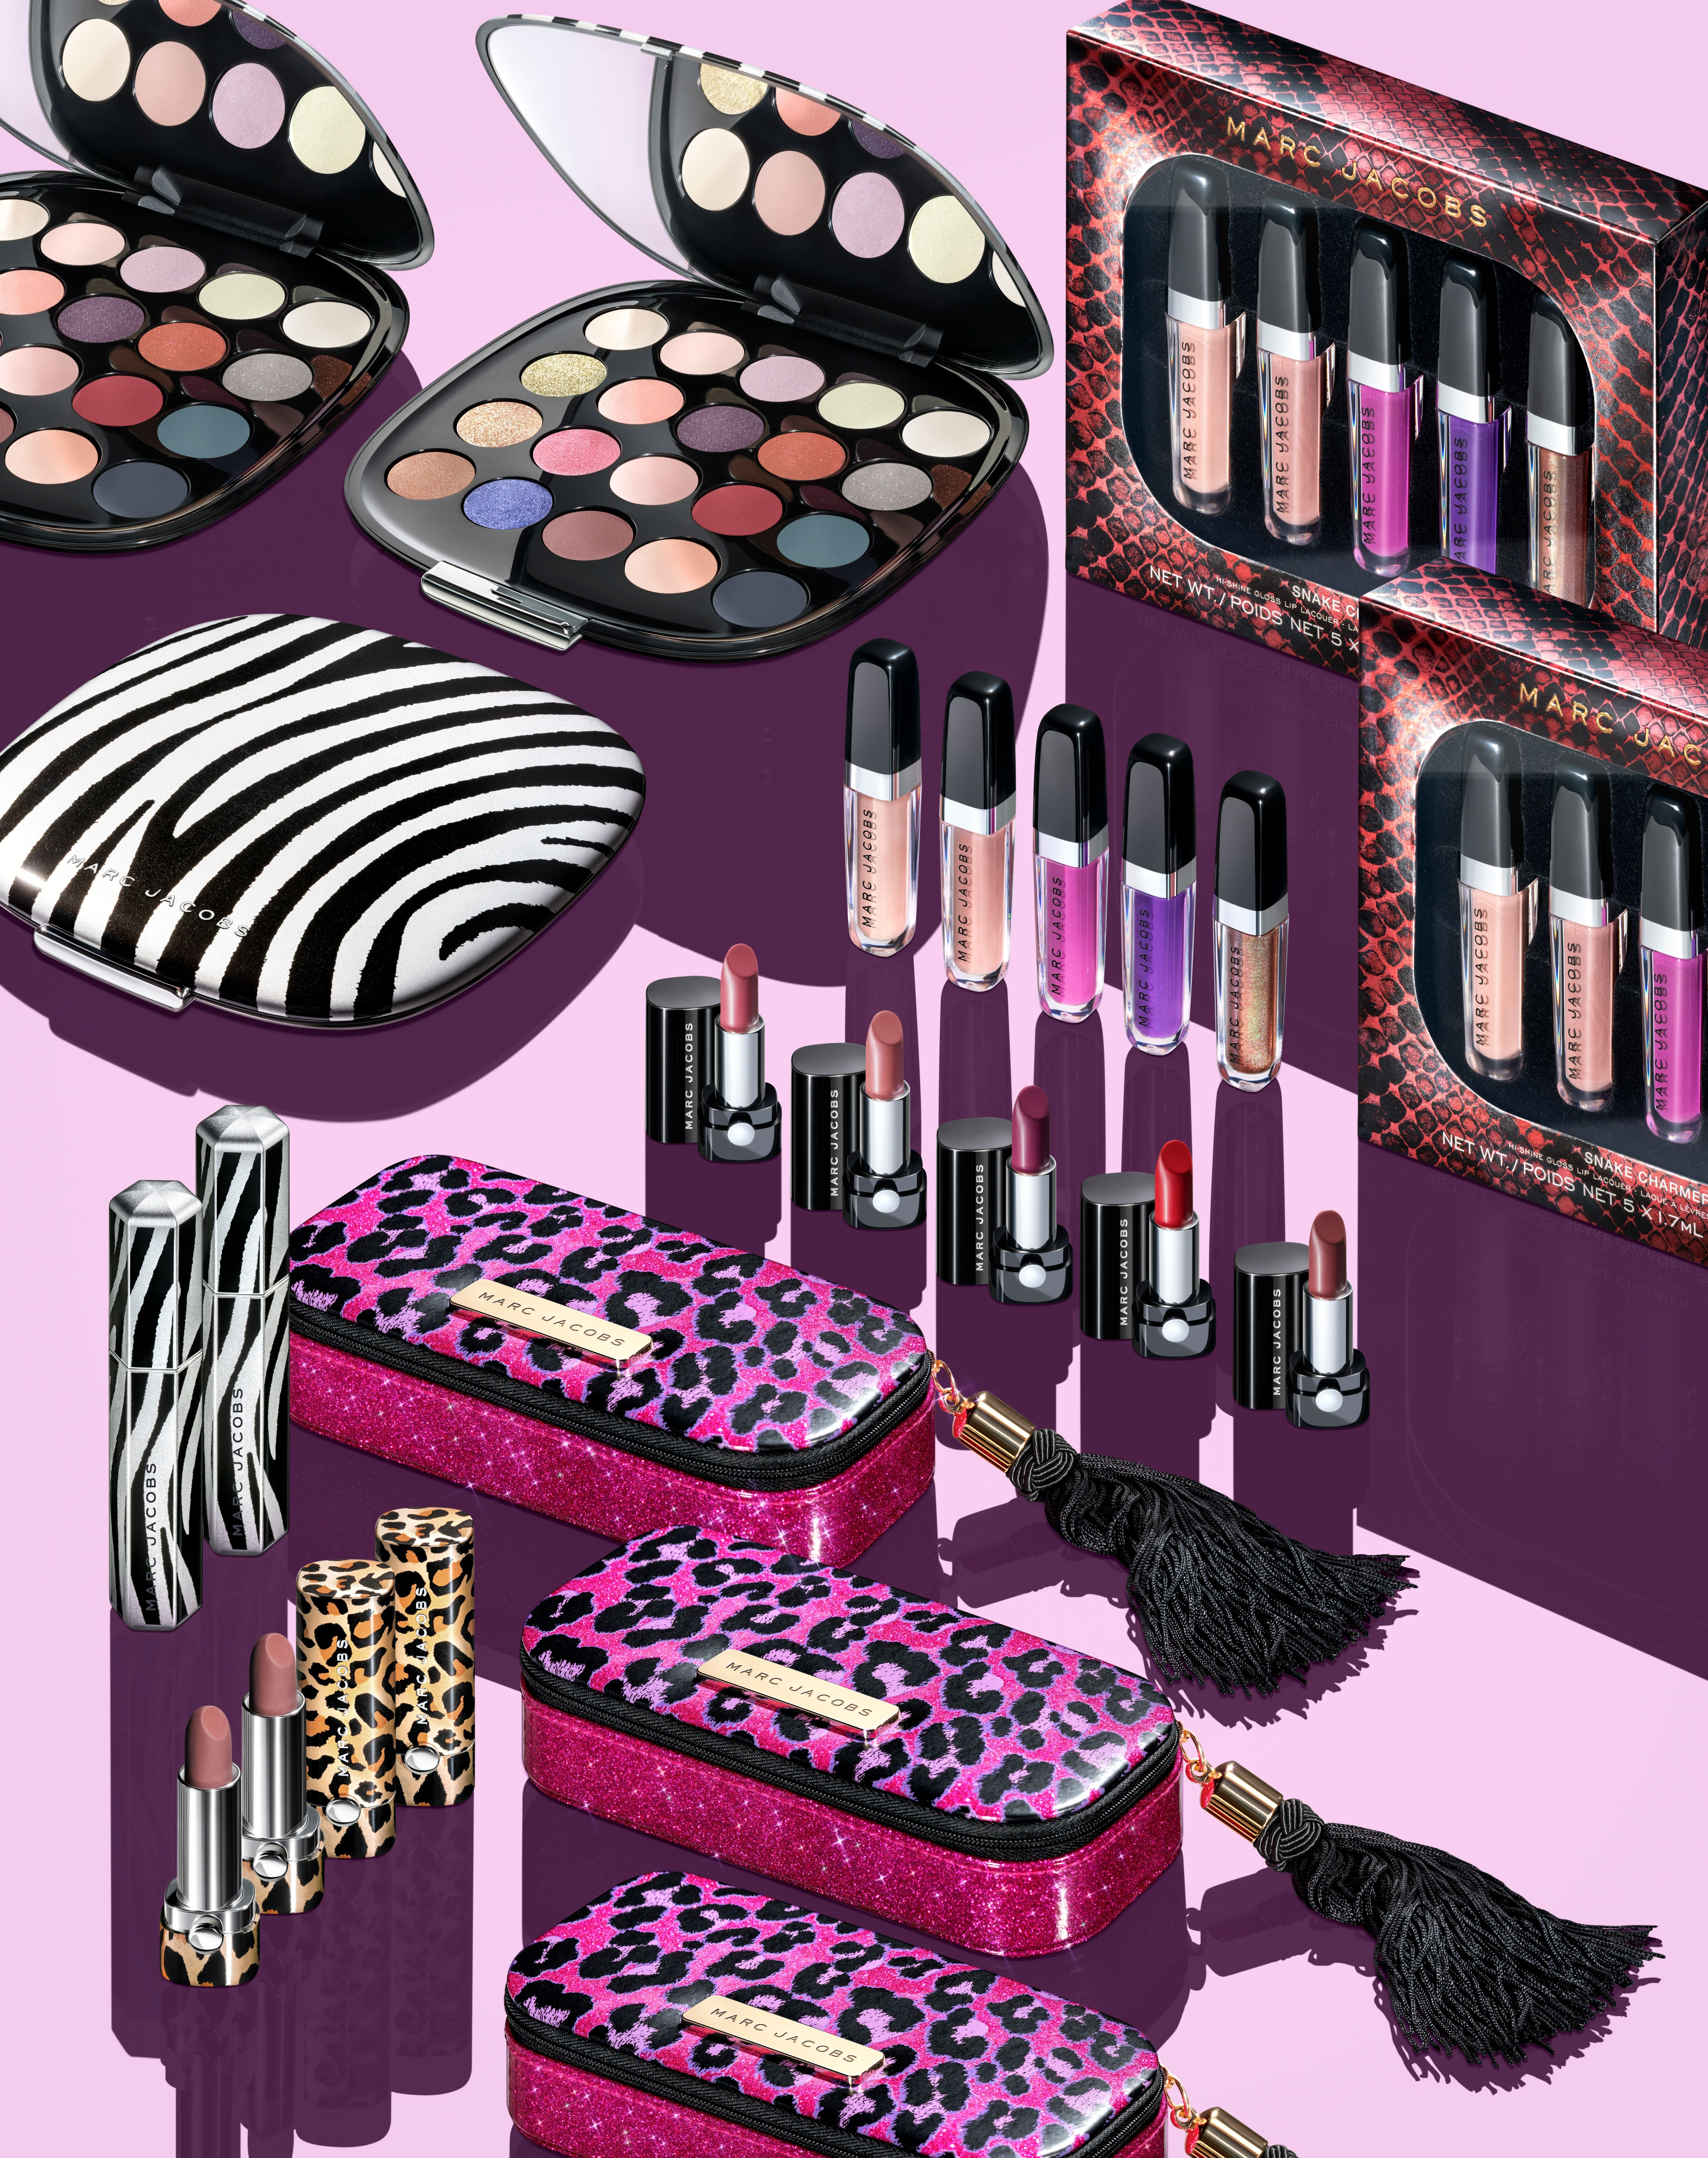 Marc Jacobs Beauty Decadent Beauty Collection for Holiday 2017